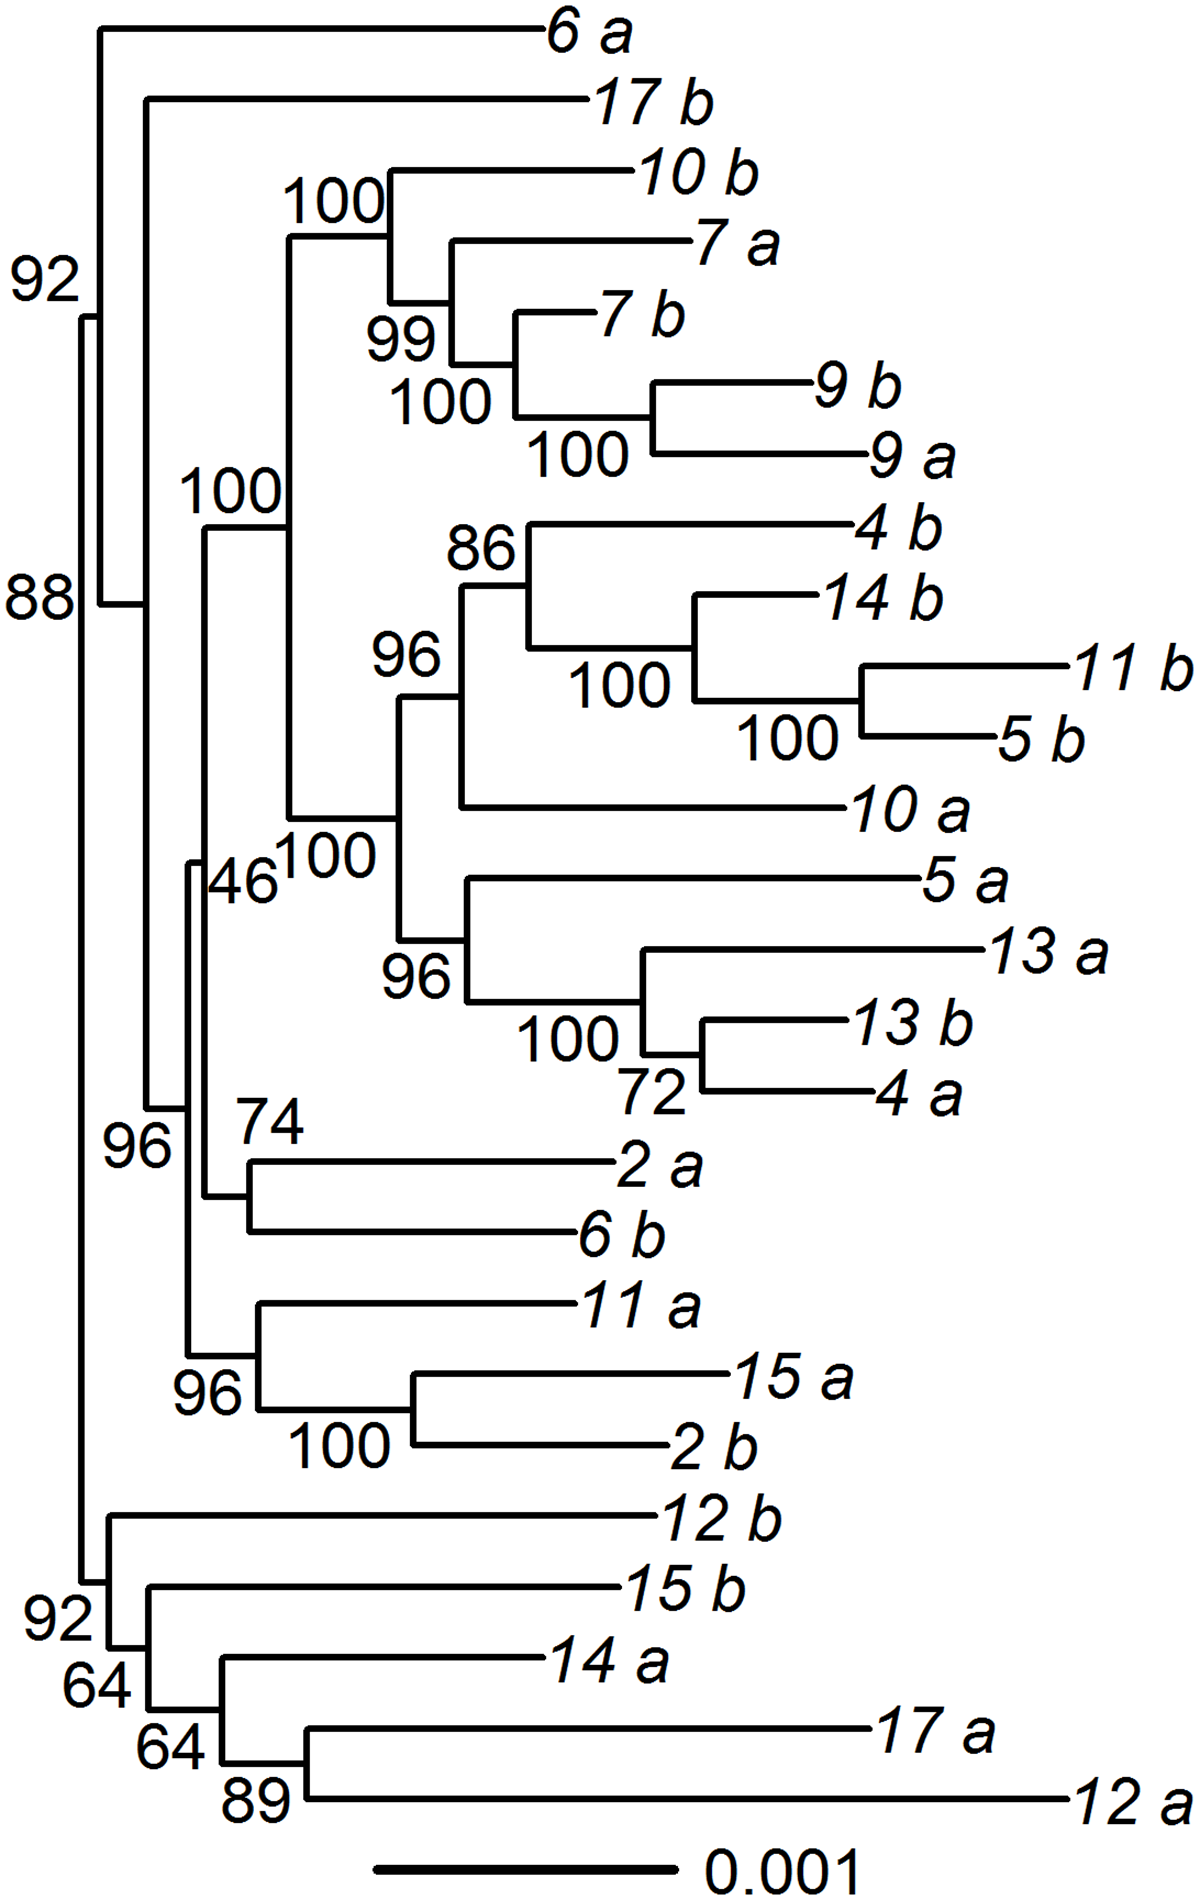 Phylogenic tree of paired specimens that underwent oligonucleotide enrichment and high-throughput sequencing.